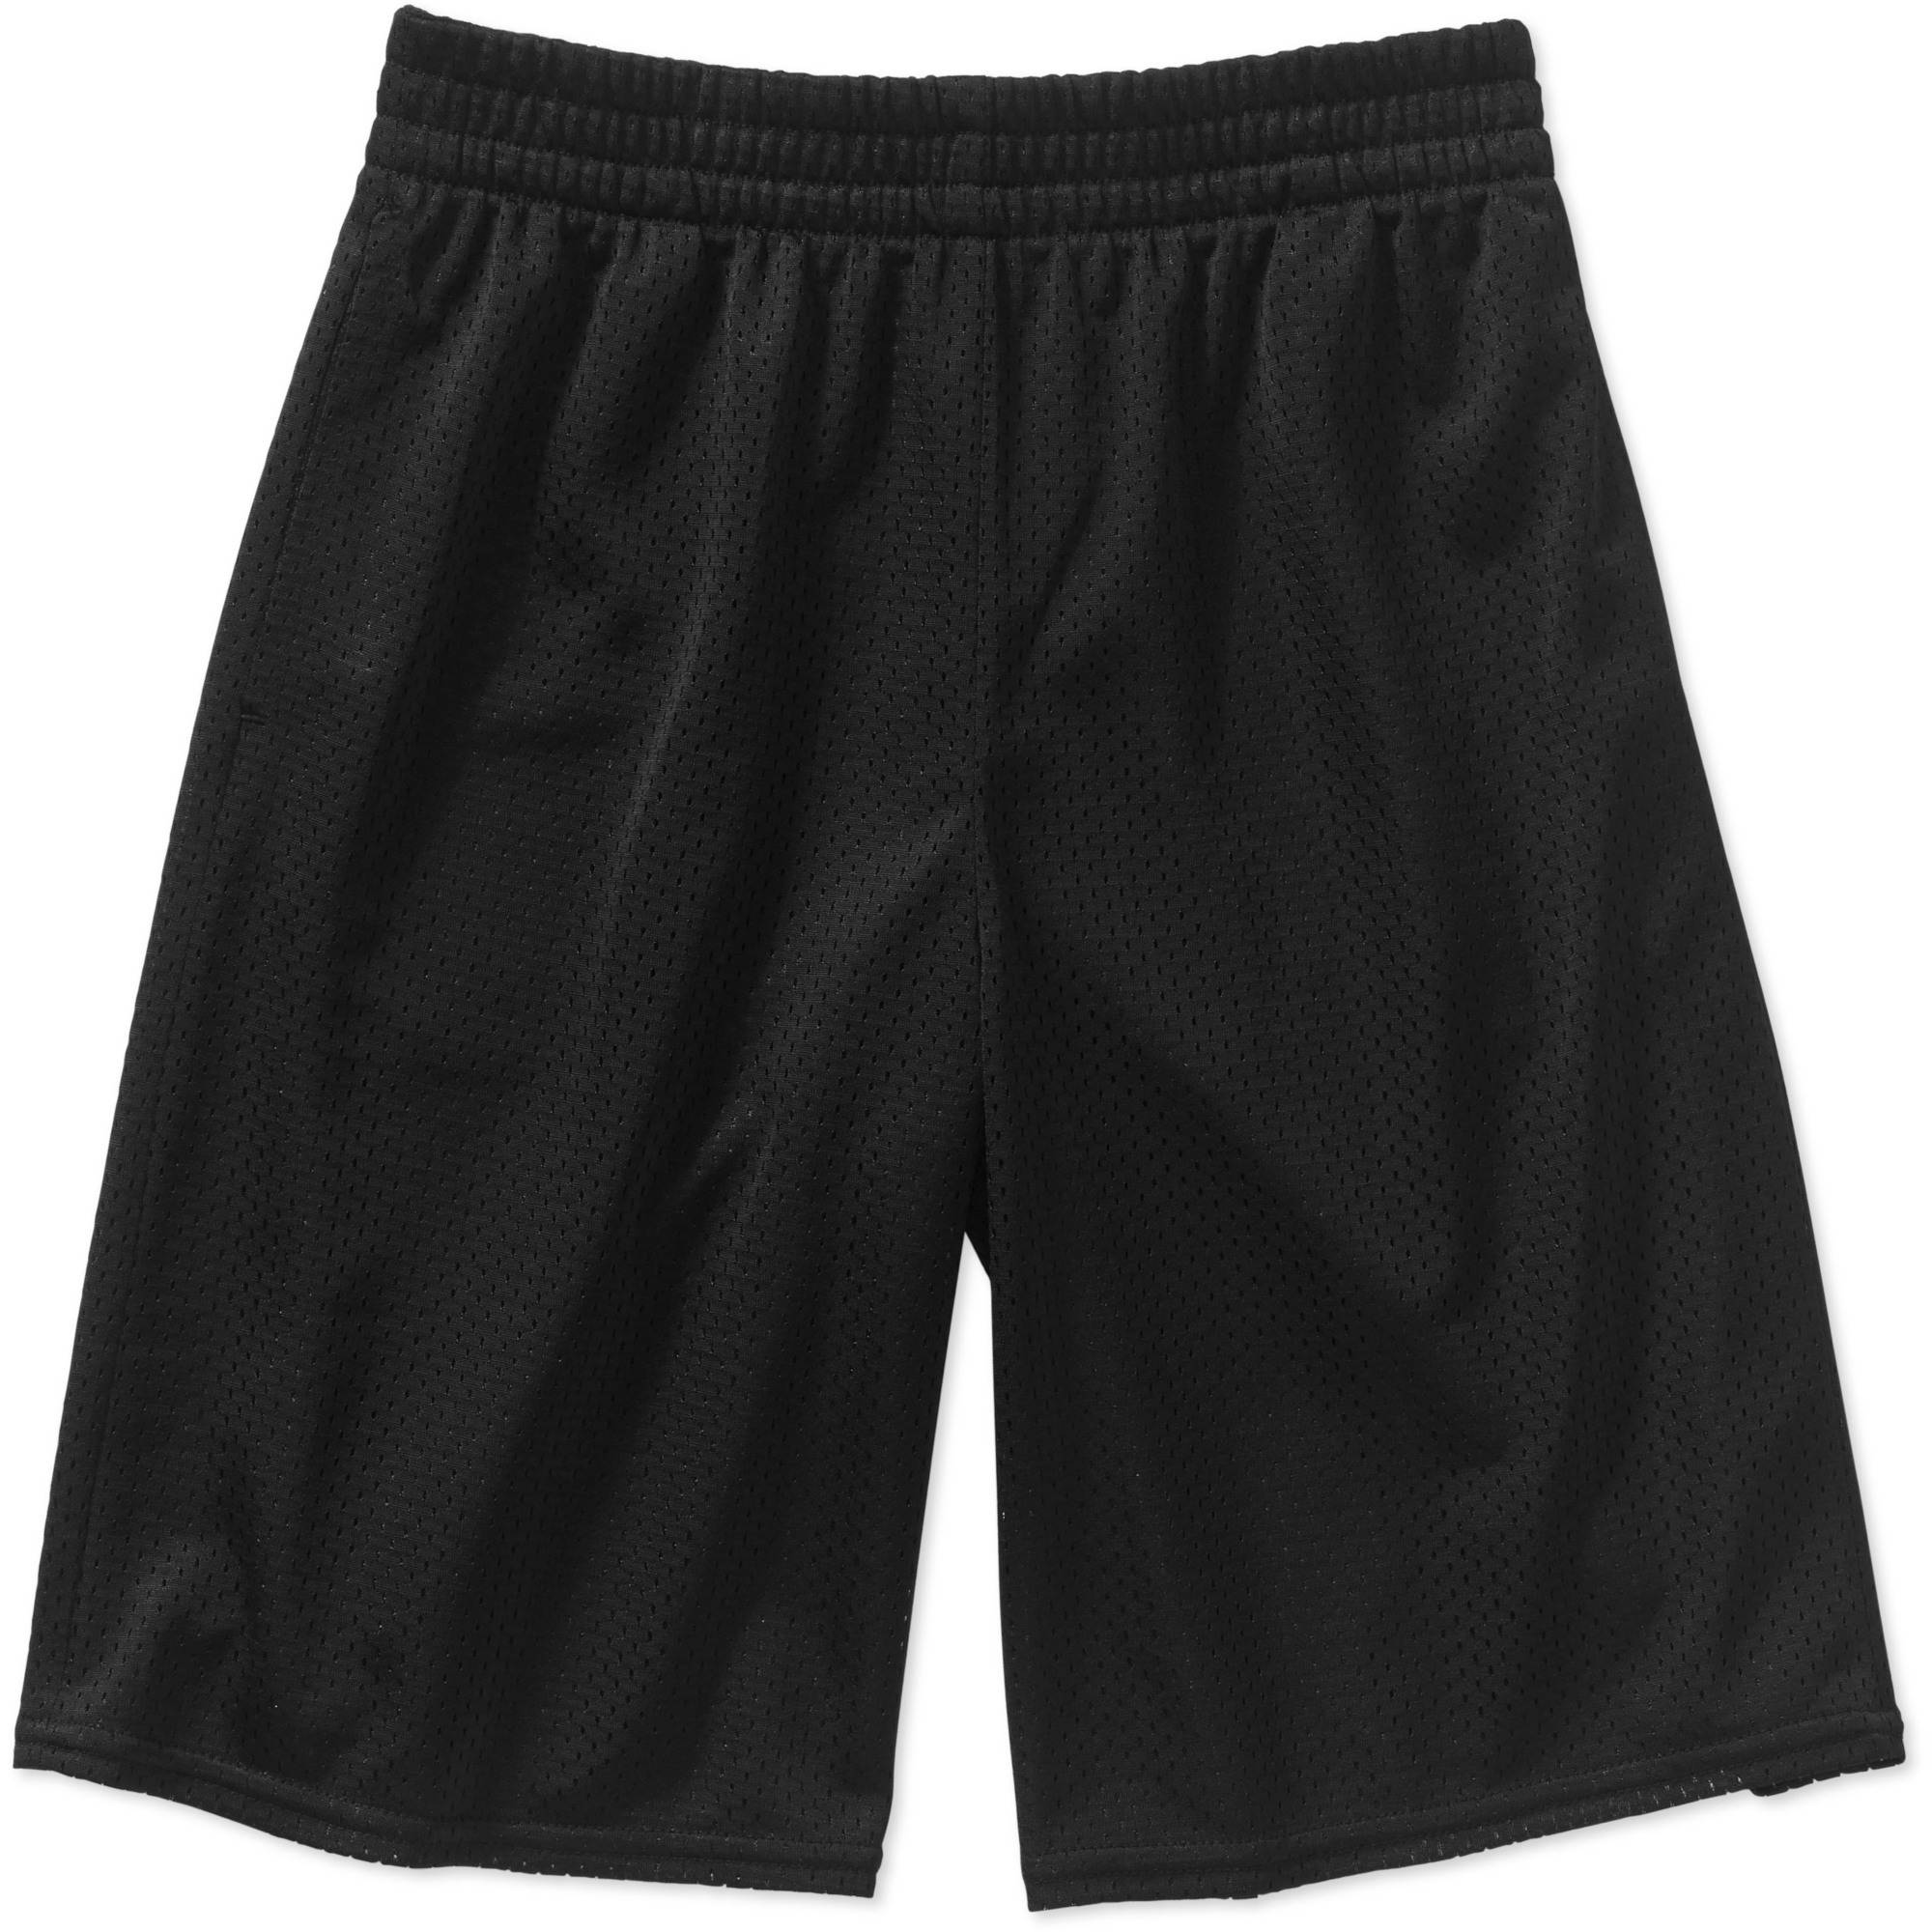 Find great deals on eBay for boys athletic shorts. Shop with confidence.